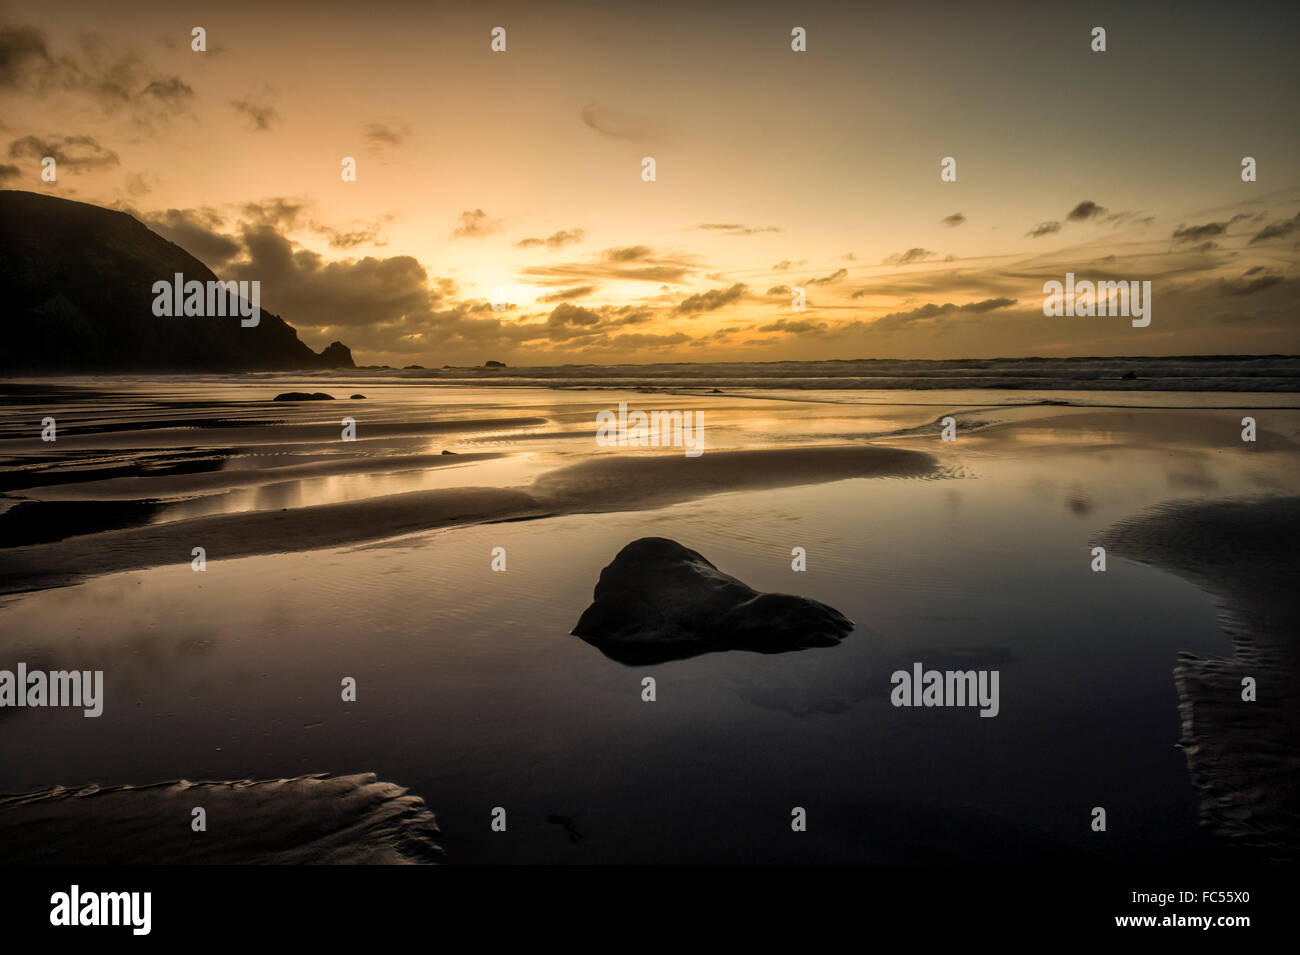 Sunset at Praia do Castelejo in the western Algarve, Portugal. - Stock Image